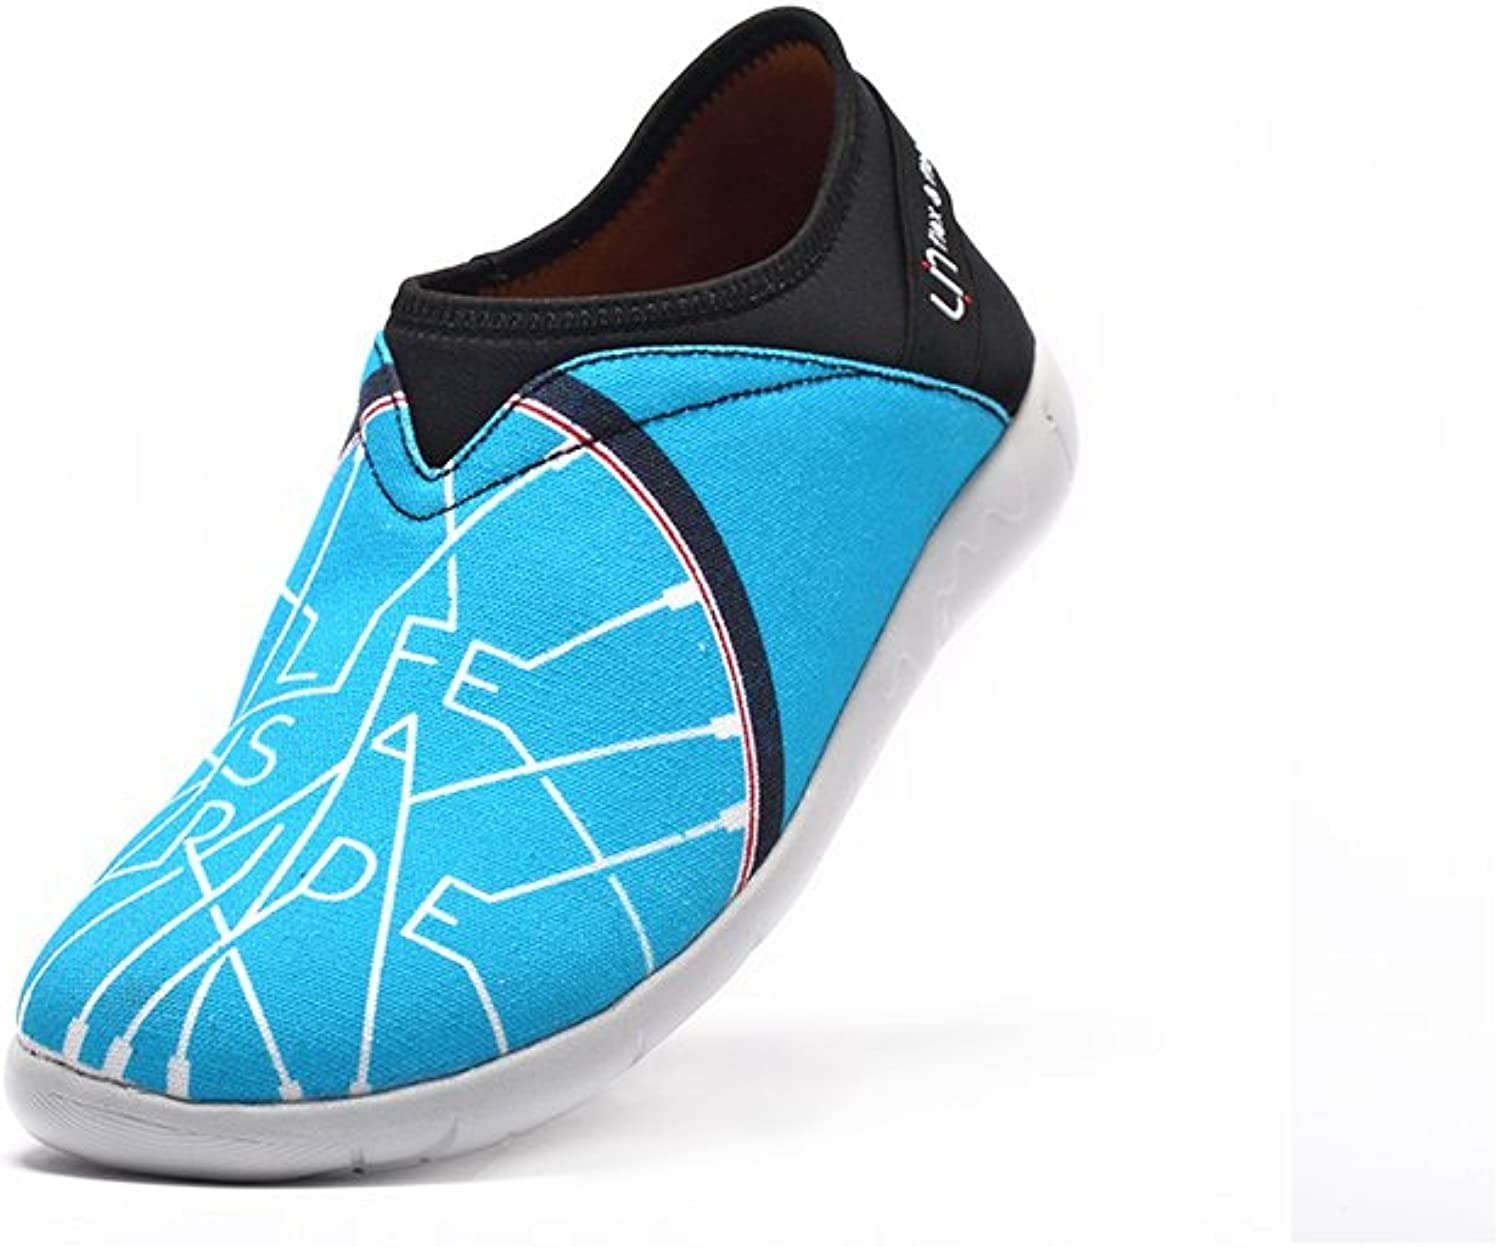 UIN Women's Life Ride Canvas Breathable Sneaker bluee